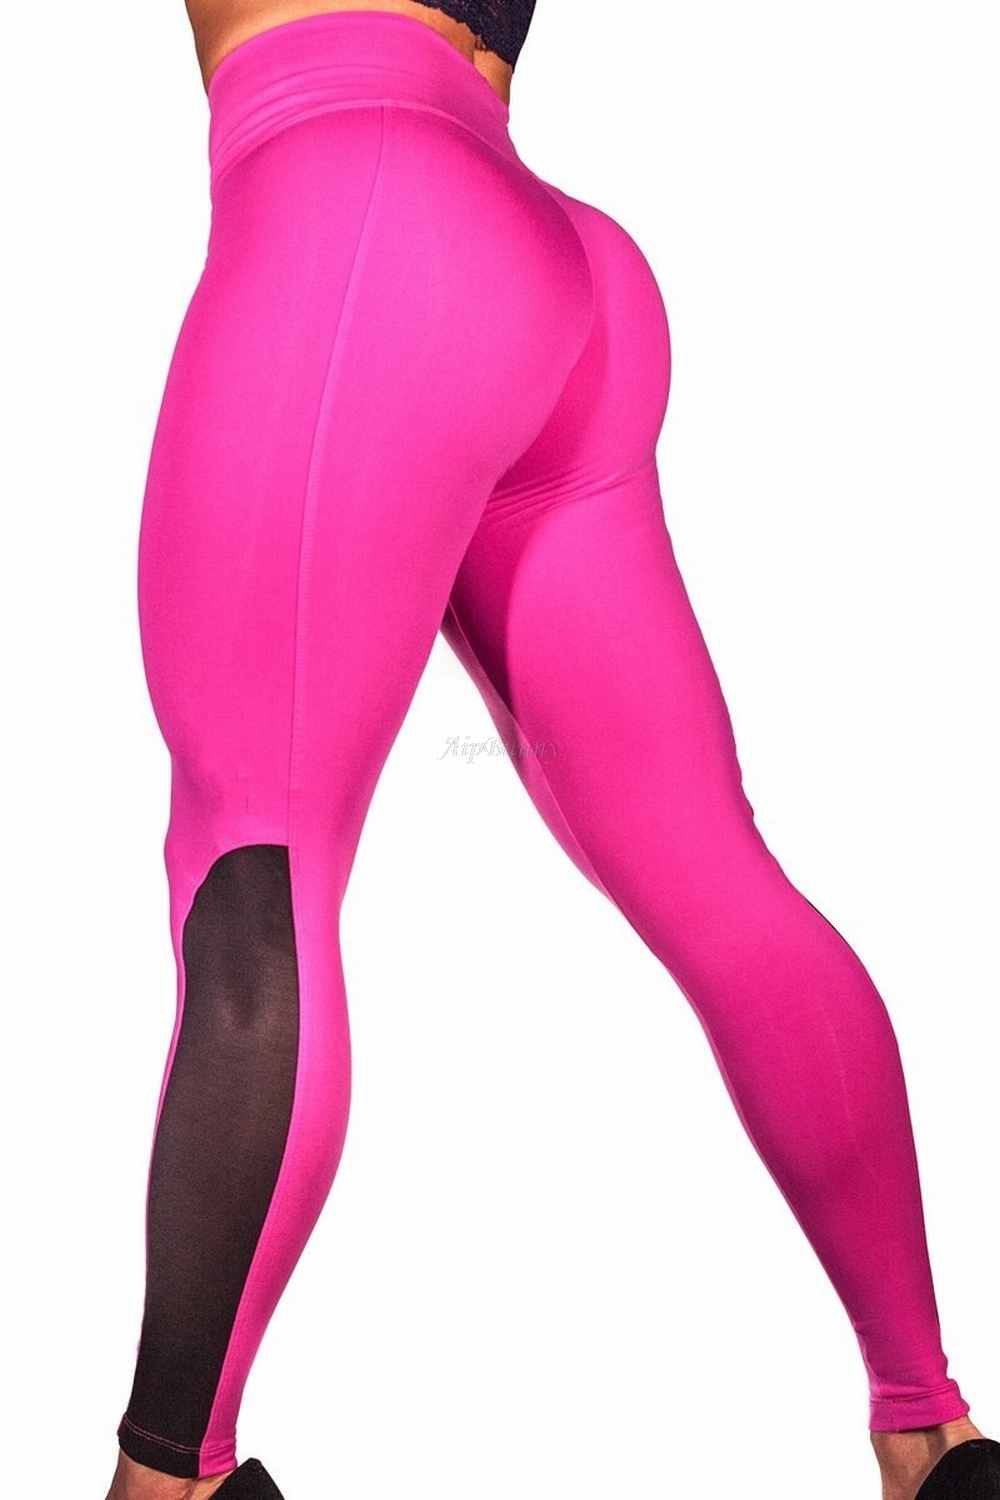 Gym Pants Mesh Hollow Out Quick Dry Yoga Pants Fitness Leggings Women Running Sweatpants High Waist Push Up Work Out